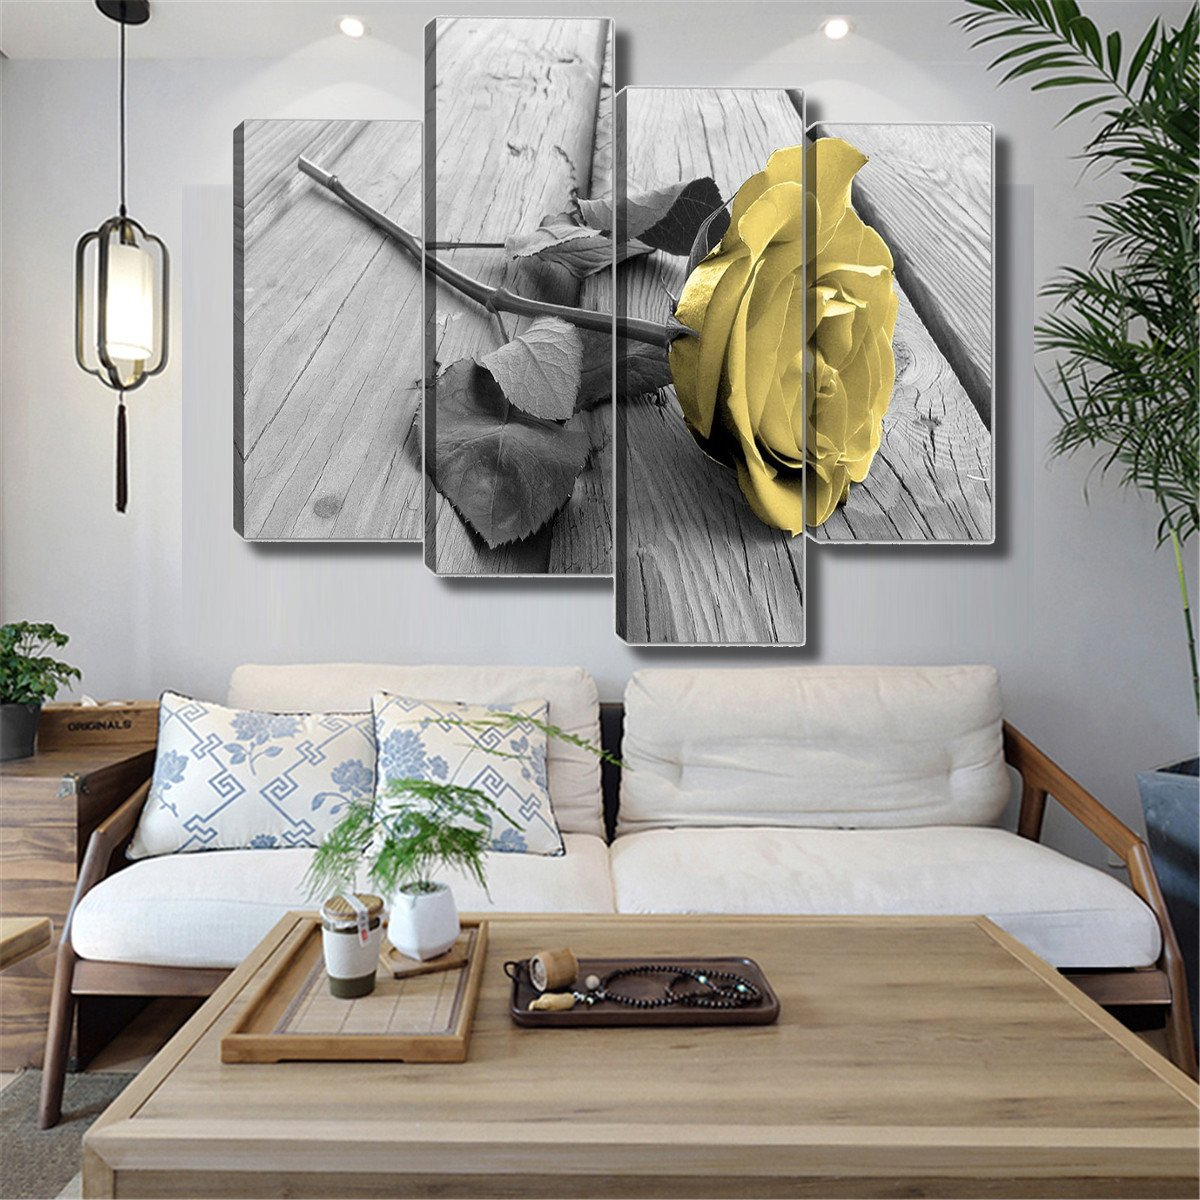 Wall Hangings for Bedroom Fresh Details About Canvas Art Painting Of Yellow Rose Wall Hanging Living Room Home